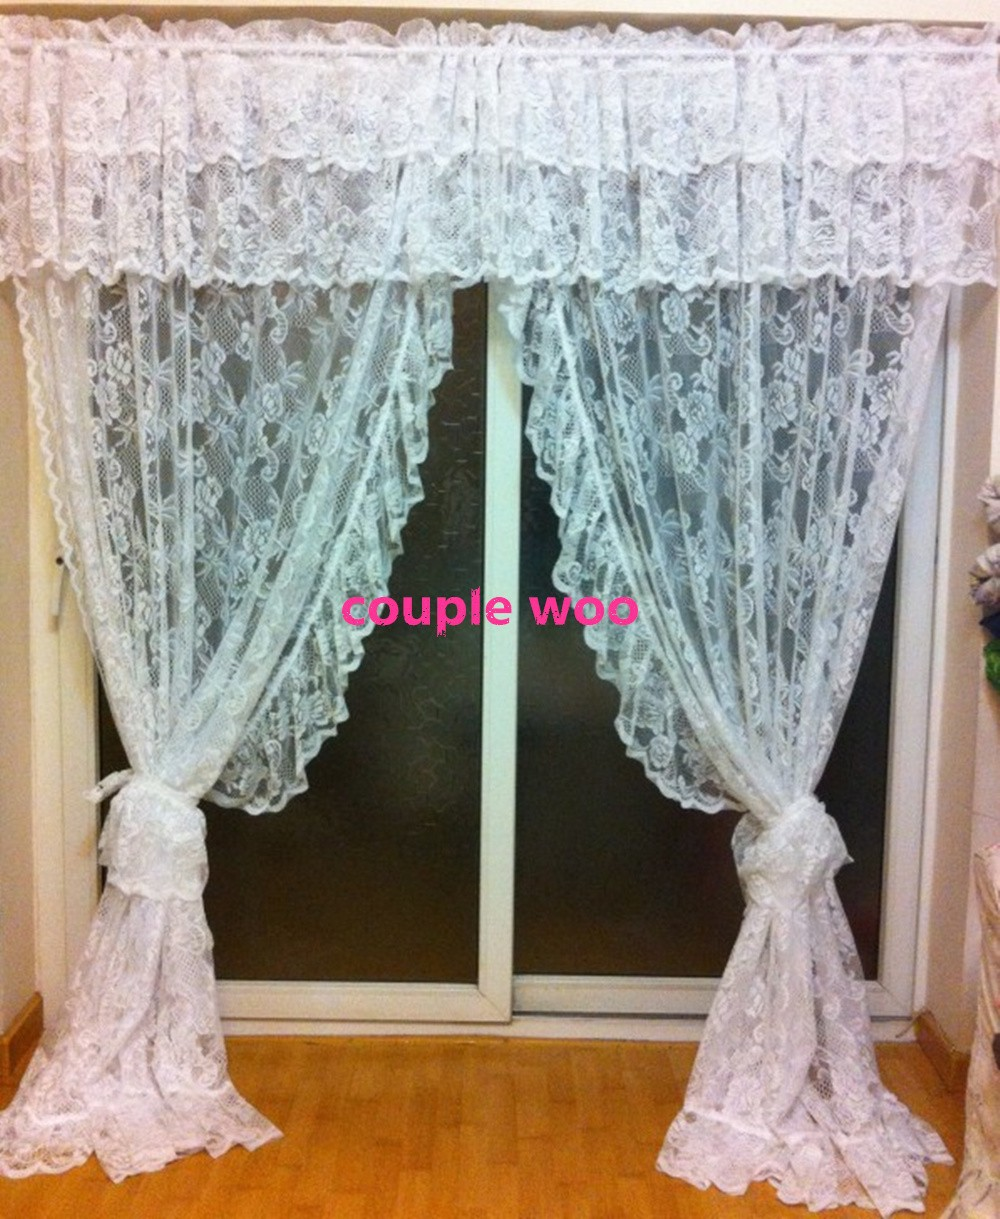 Crossover Lace Rose Kitchen Curtains With Dots Cross Over Cream 2pcs 127x213cm With 18 Cm And 46cm Valance Curtain Holds Kitchen Curtain Patternkitchen Curtain Aliexpress